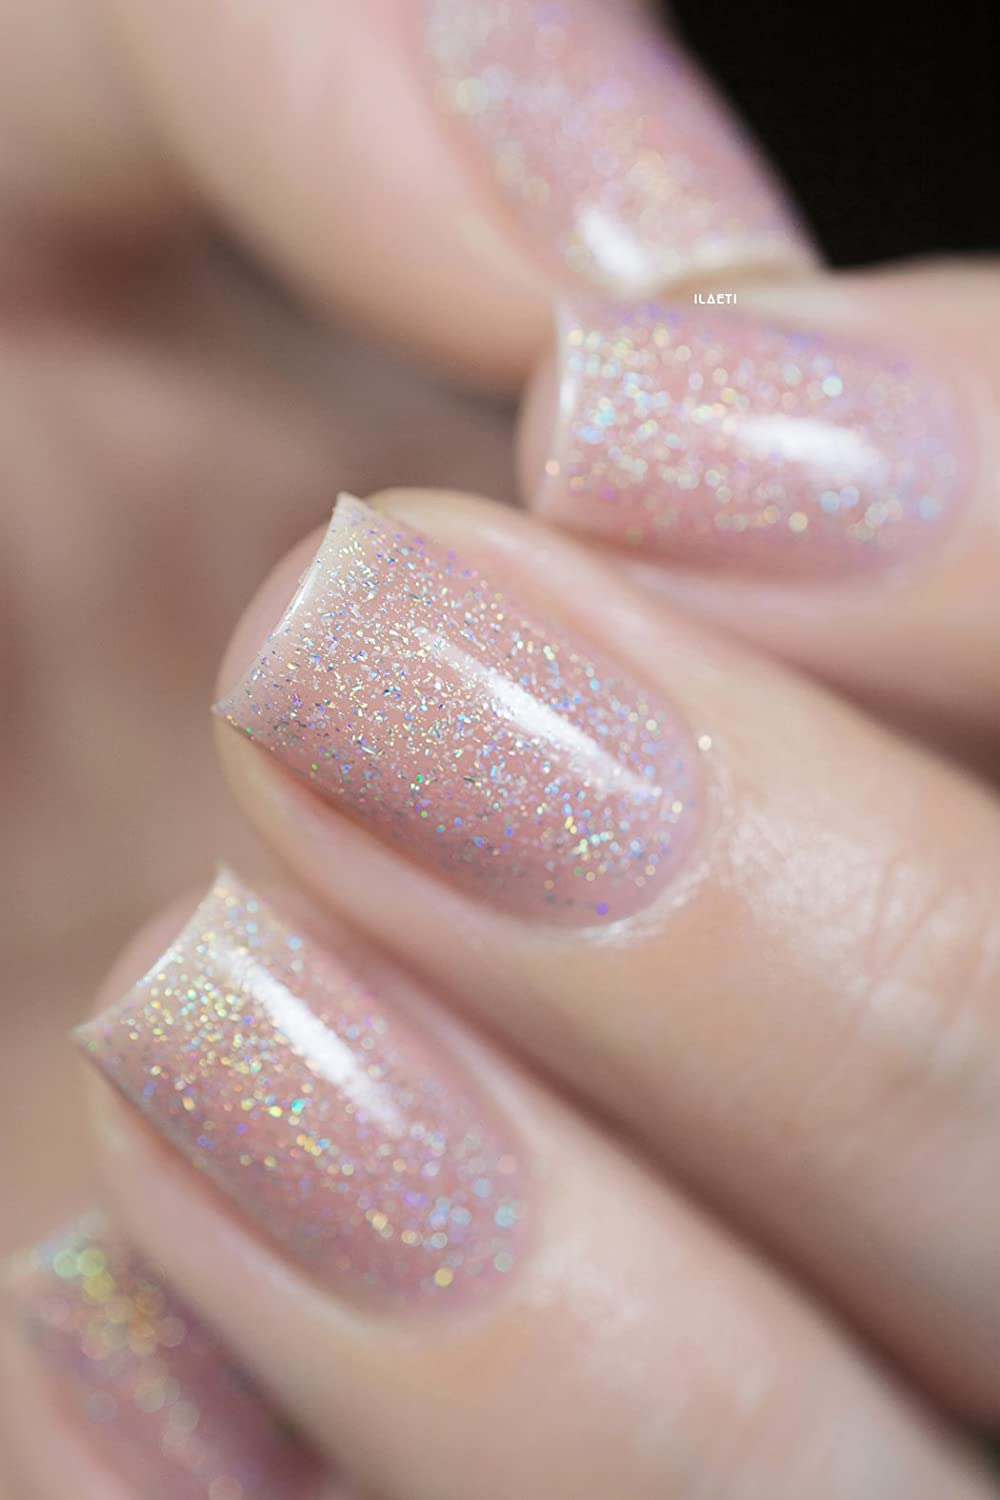 Amazon.com : ILNP Sandy Baby - Peach Beige Holographic Sheer Jelly ...